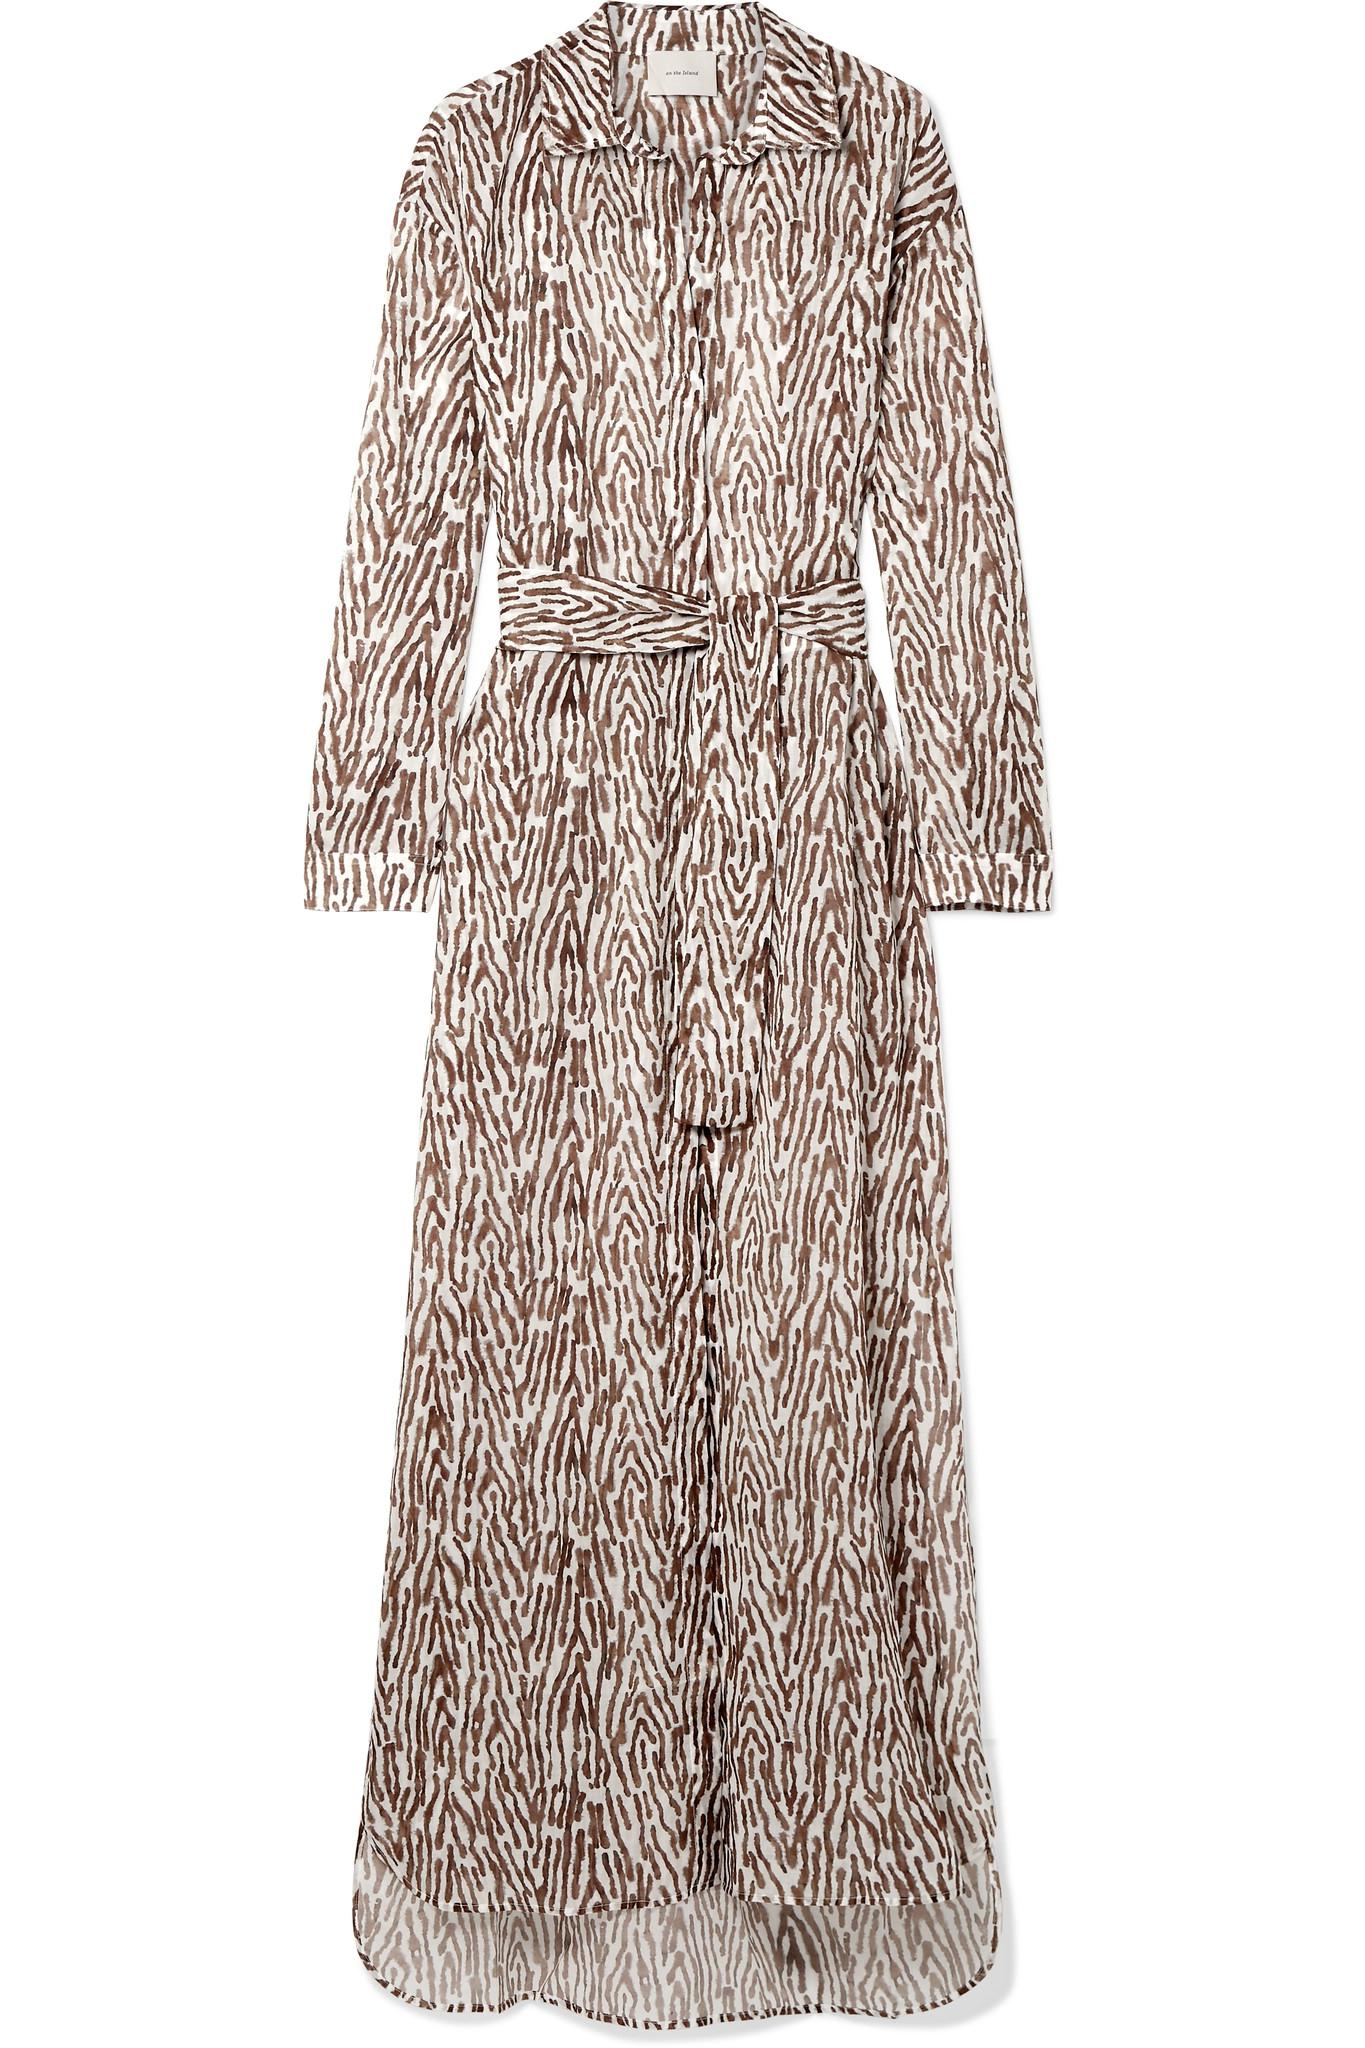 Balos Zebra-print Cotton-voile Robe - Dark brown Marios Schwab Amazing Price J65bT